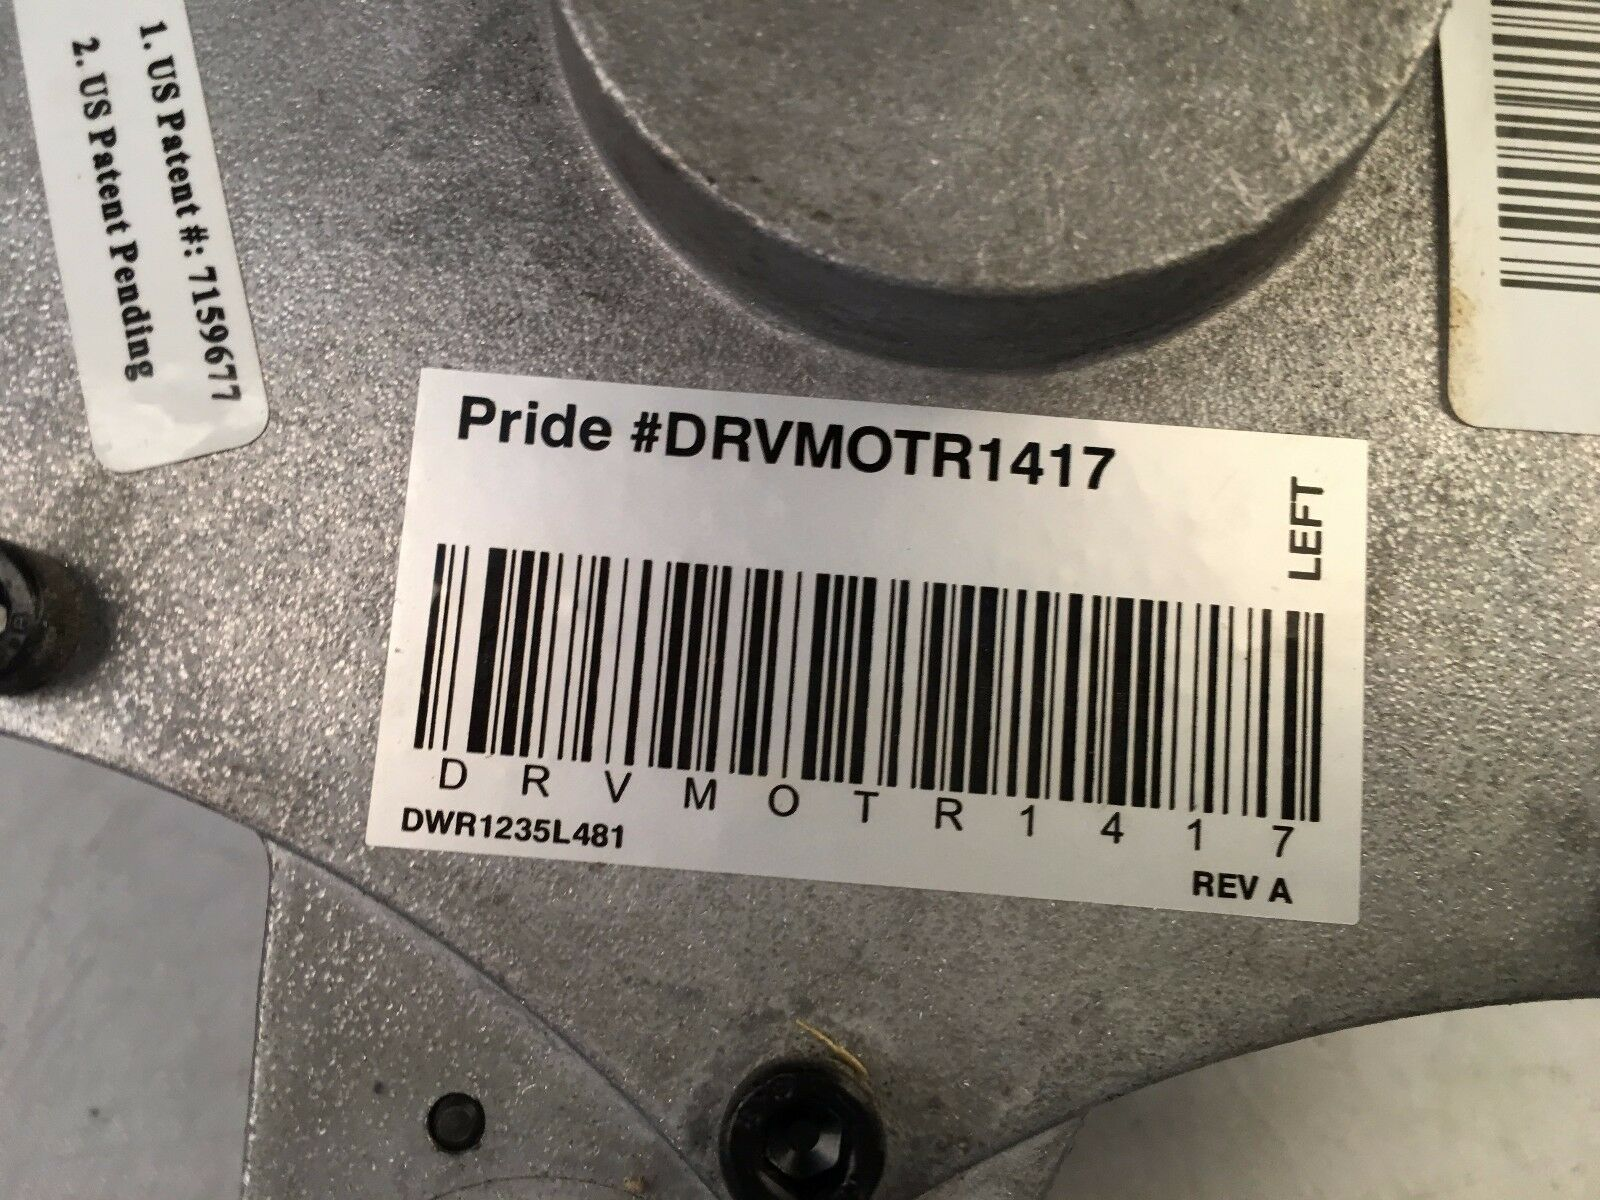 Pride Jazzy TSS 300 - Pair of Motors - Tested - For Power WheelChairs image 8